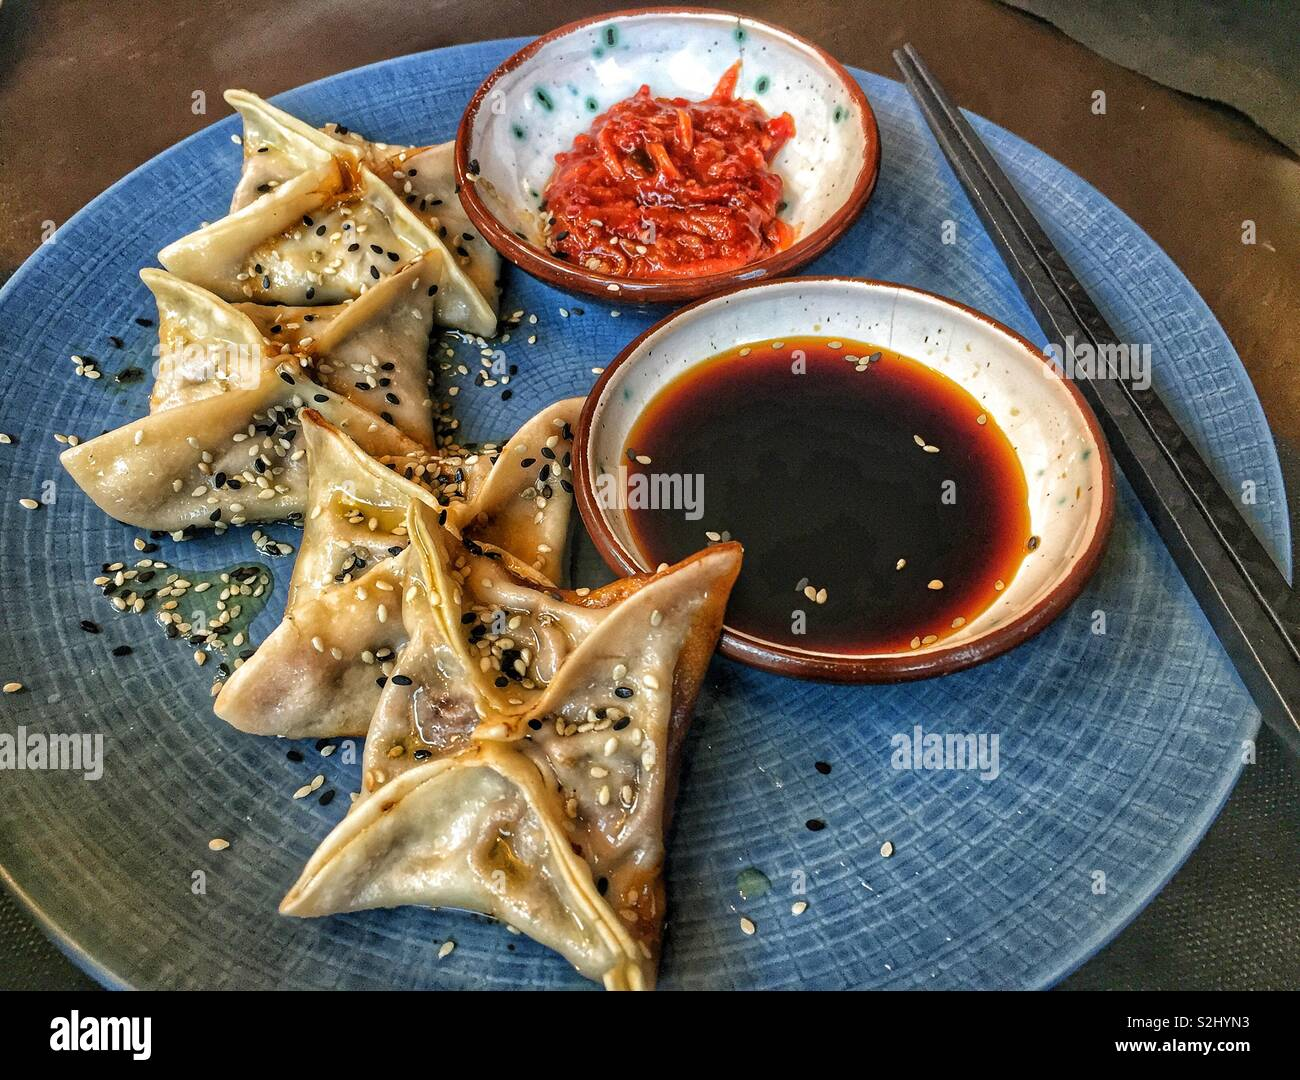 Chinese dumplings served with soya souse and chili - Stock Image